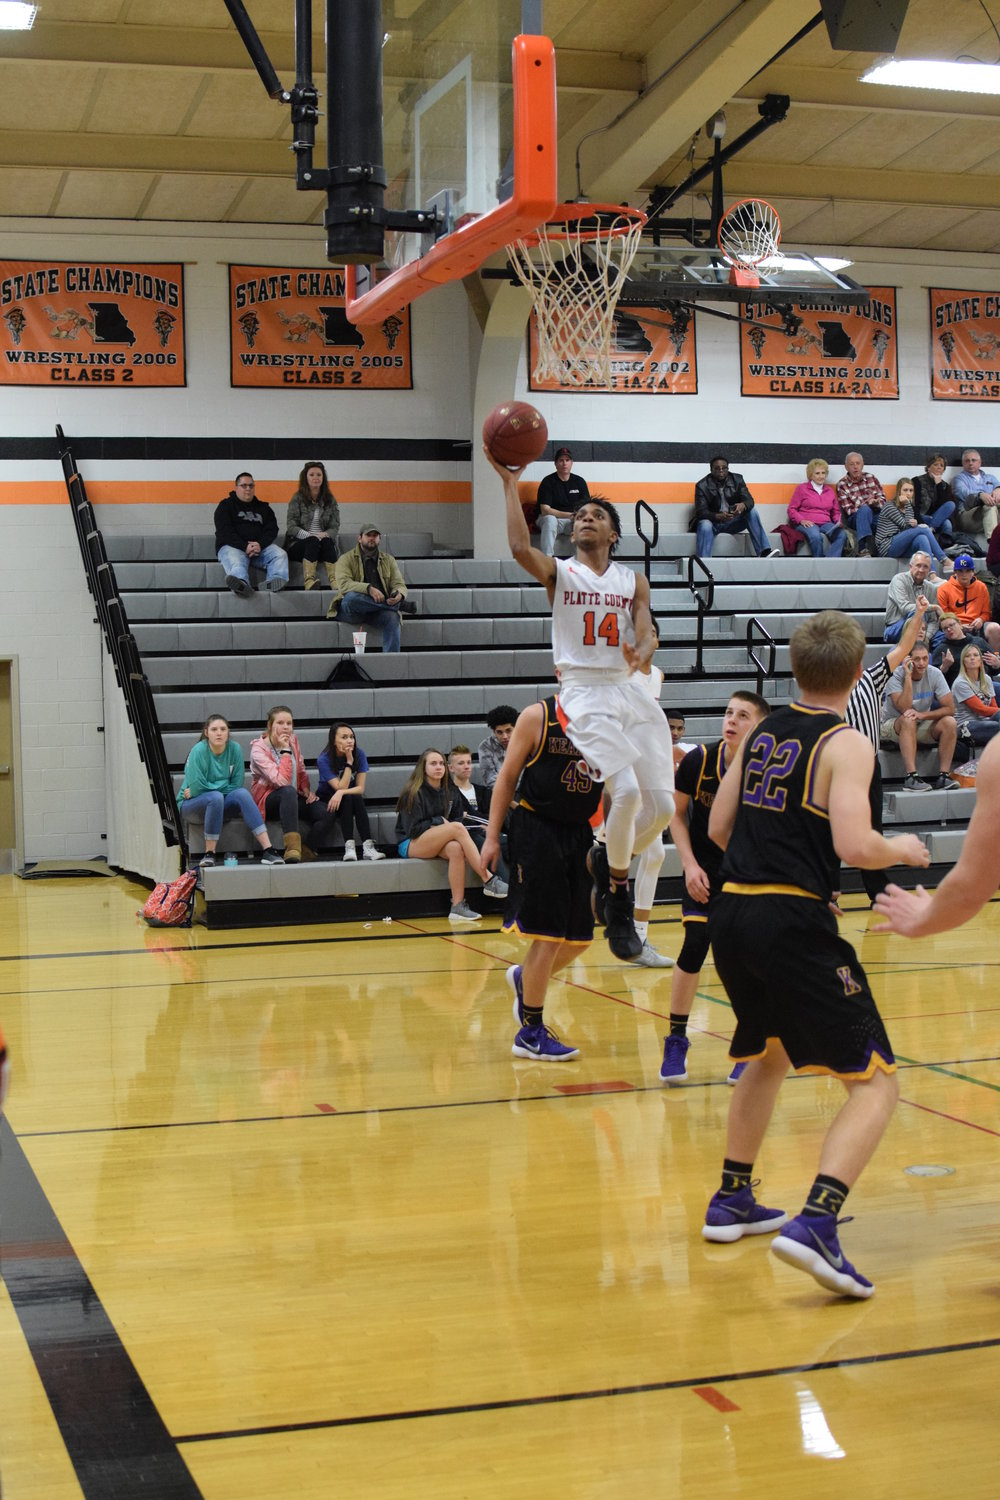 BRYCE MERENESS/Citizen photo Platte County sophomore Darren Wilson goes up for a layup in the Pirates' 59-51 win against Kearney on Tuesday, Feb. 13 at Platte County High School.